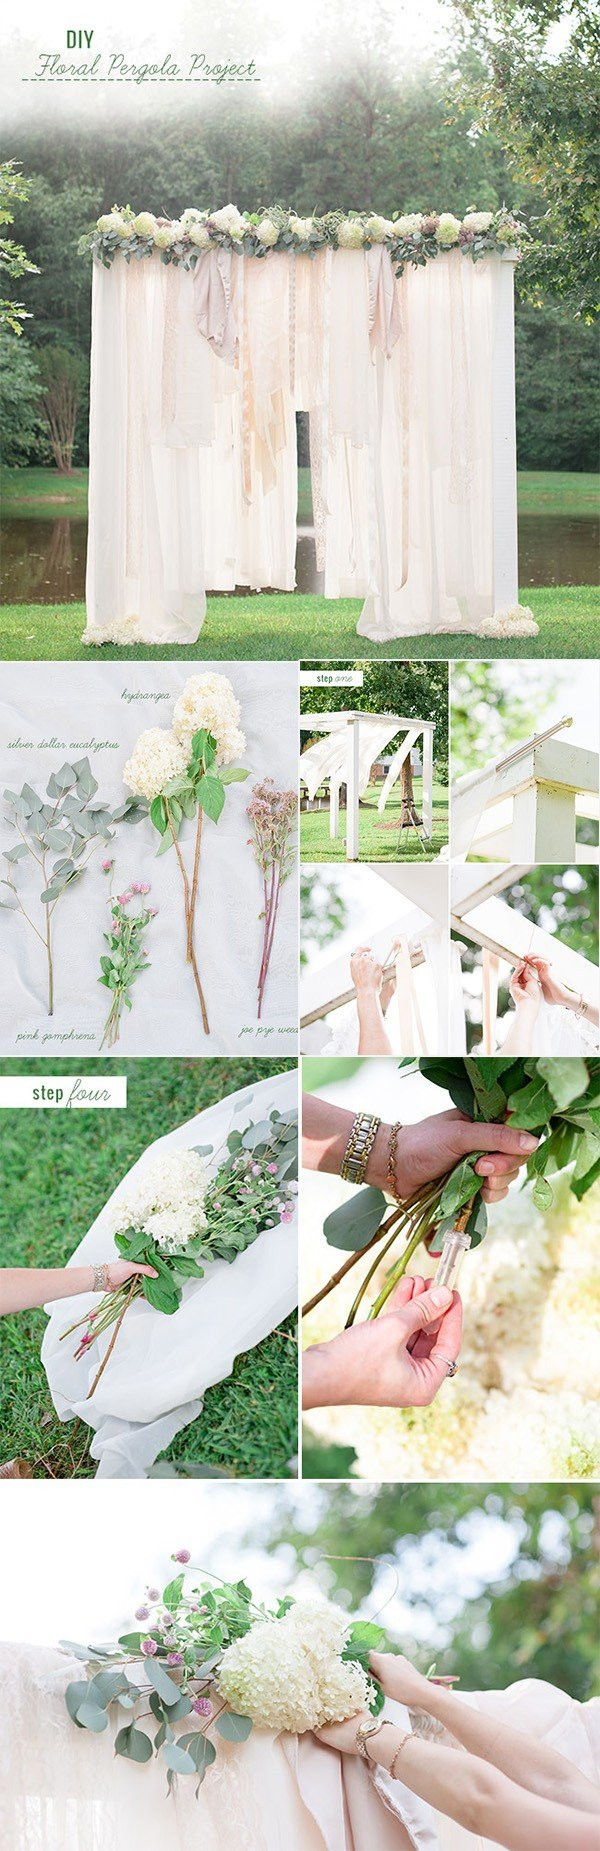 Best ideas about DIY Weddings On A Budget . Save or Pin 10 Perfect DIY Wedding Ideas on a Bud Oh Best Day Ever Now.